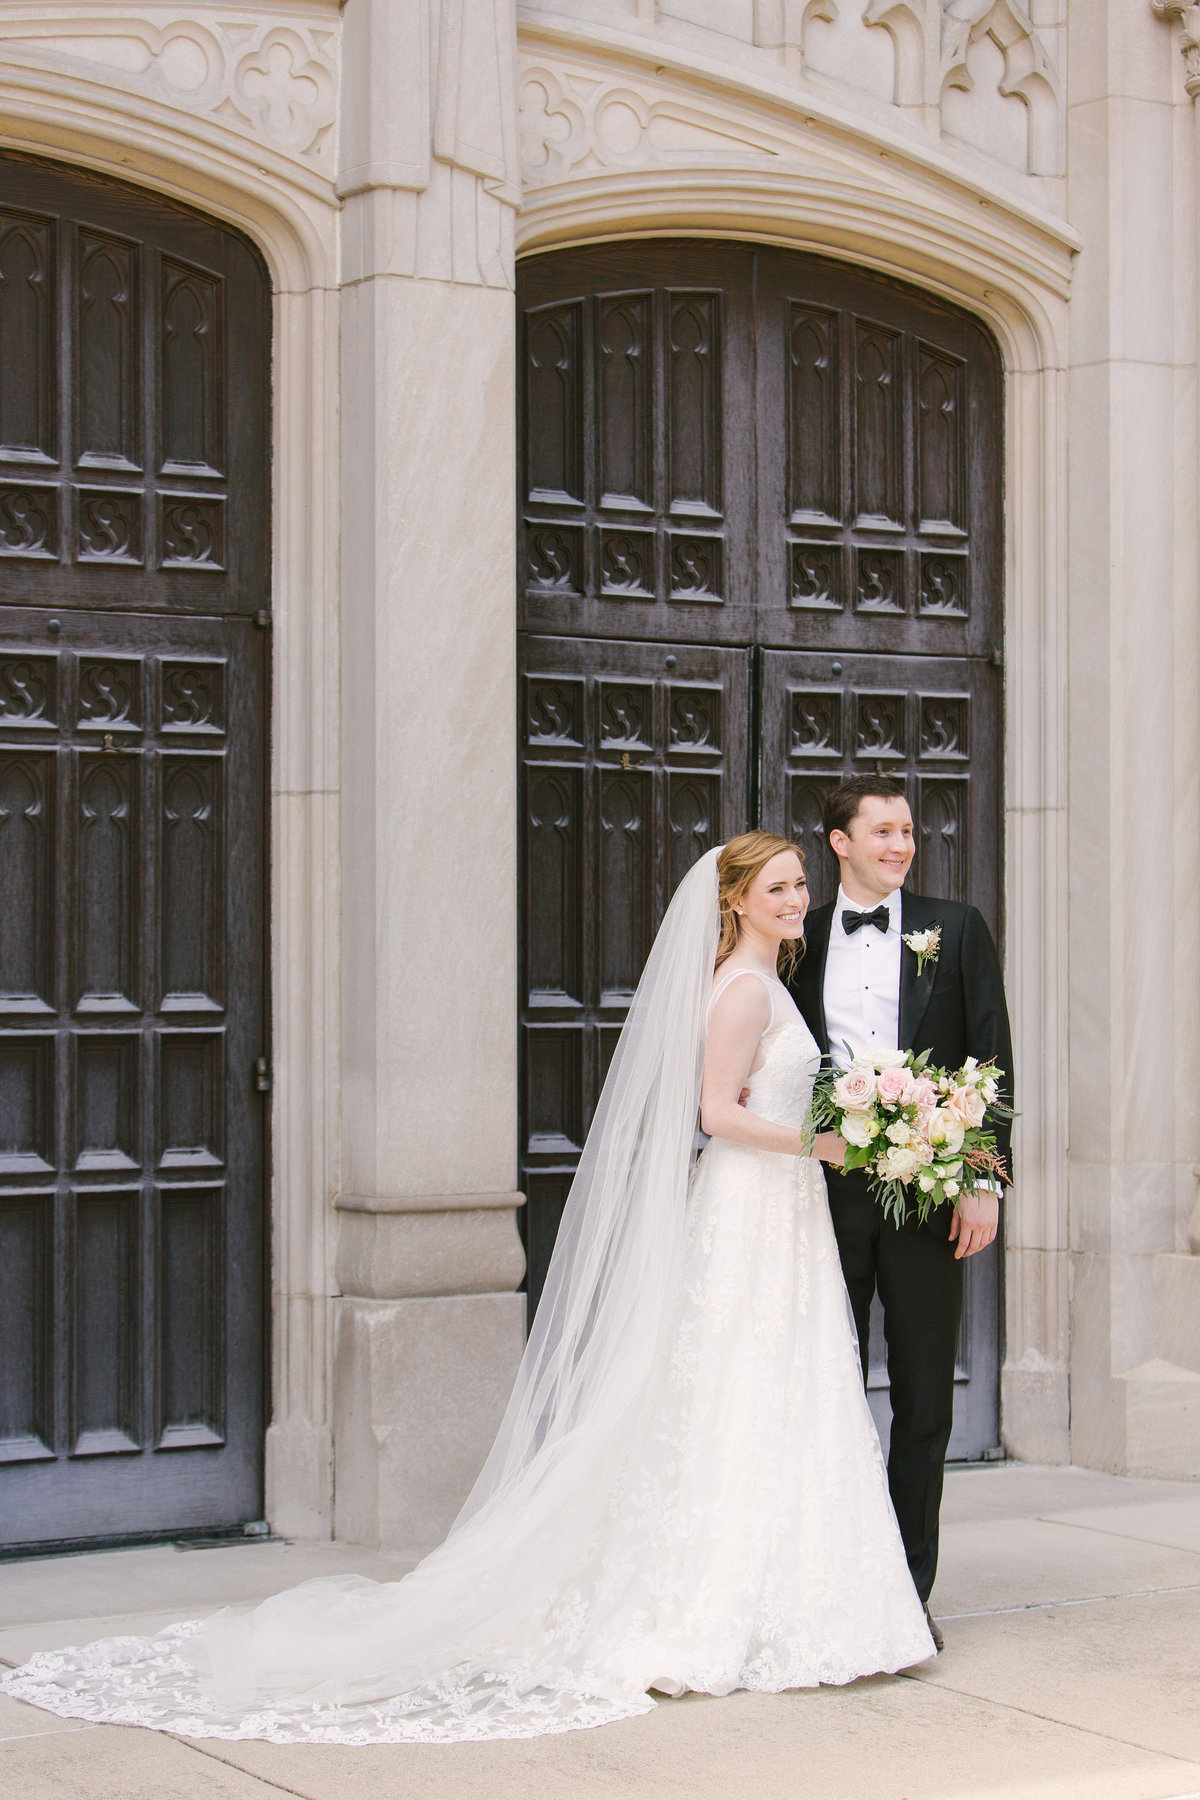 Scottish Rite Cathedral Wedding Lace Wedding Dress Photo